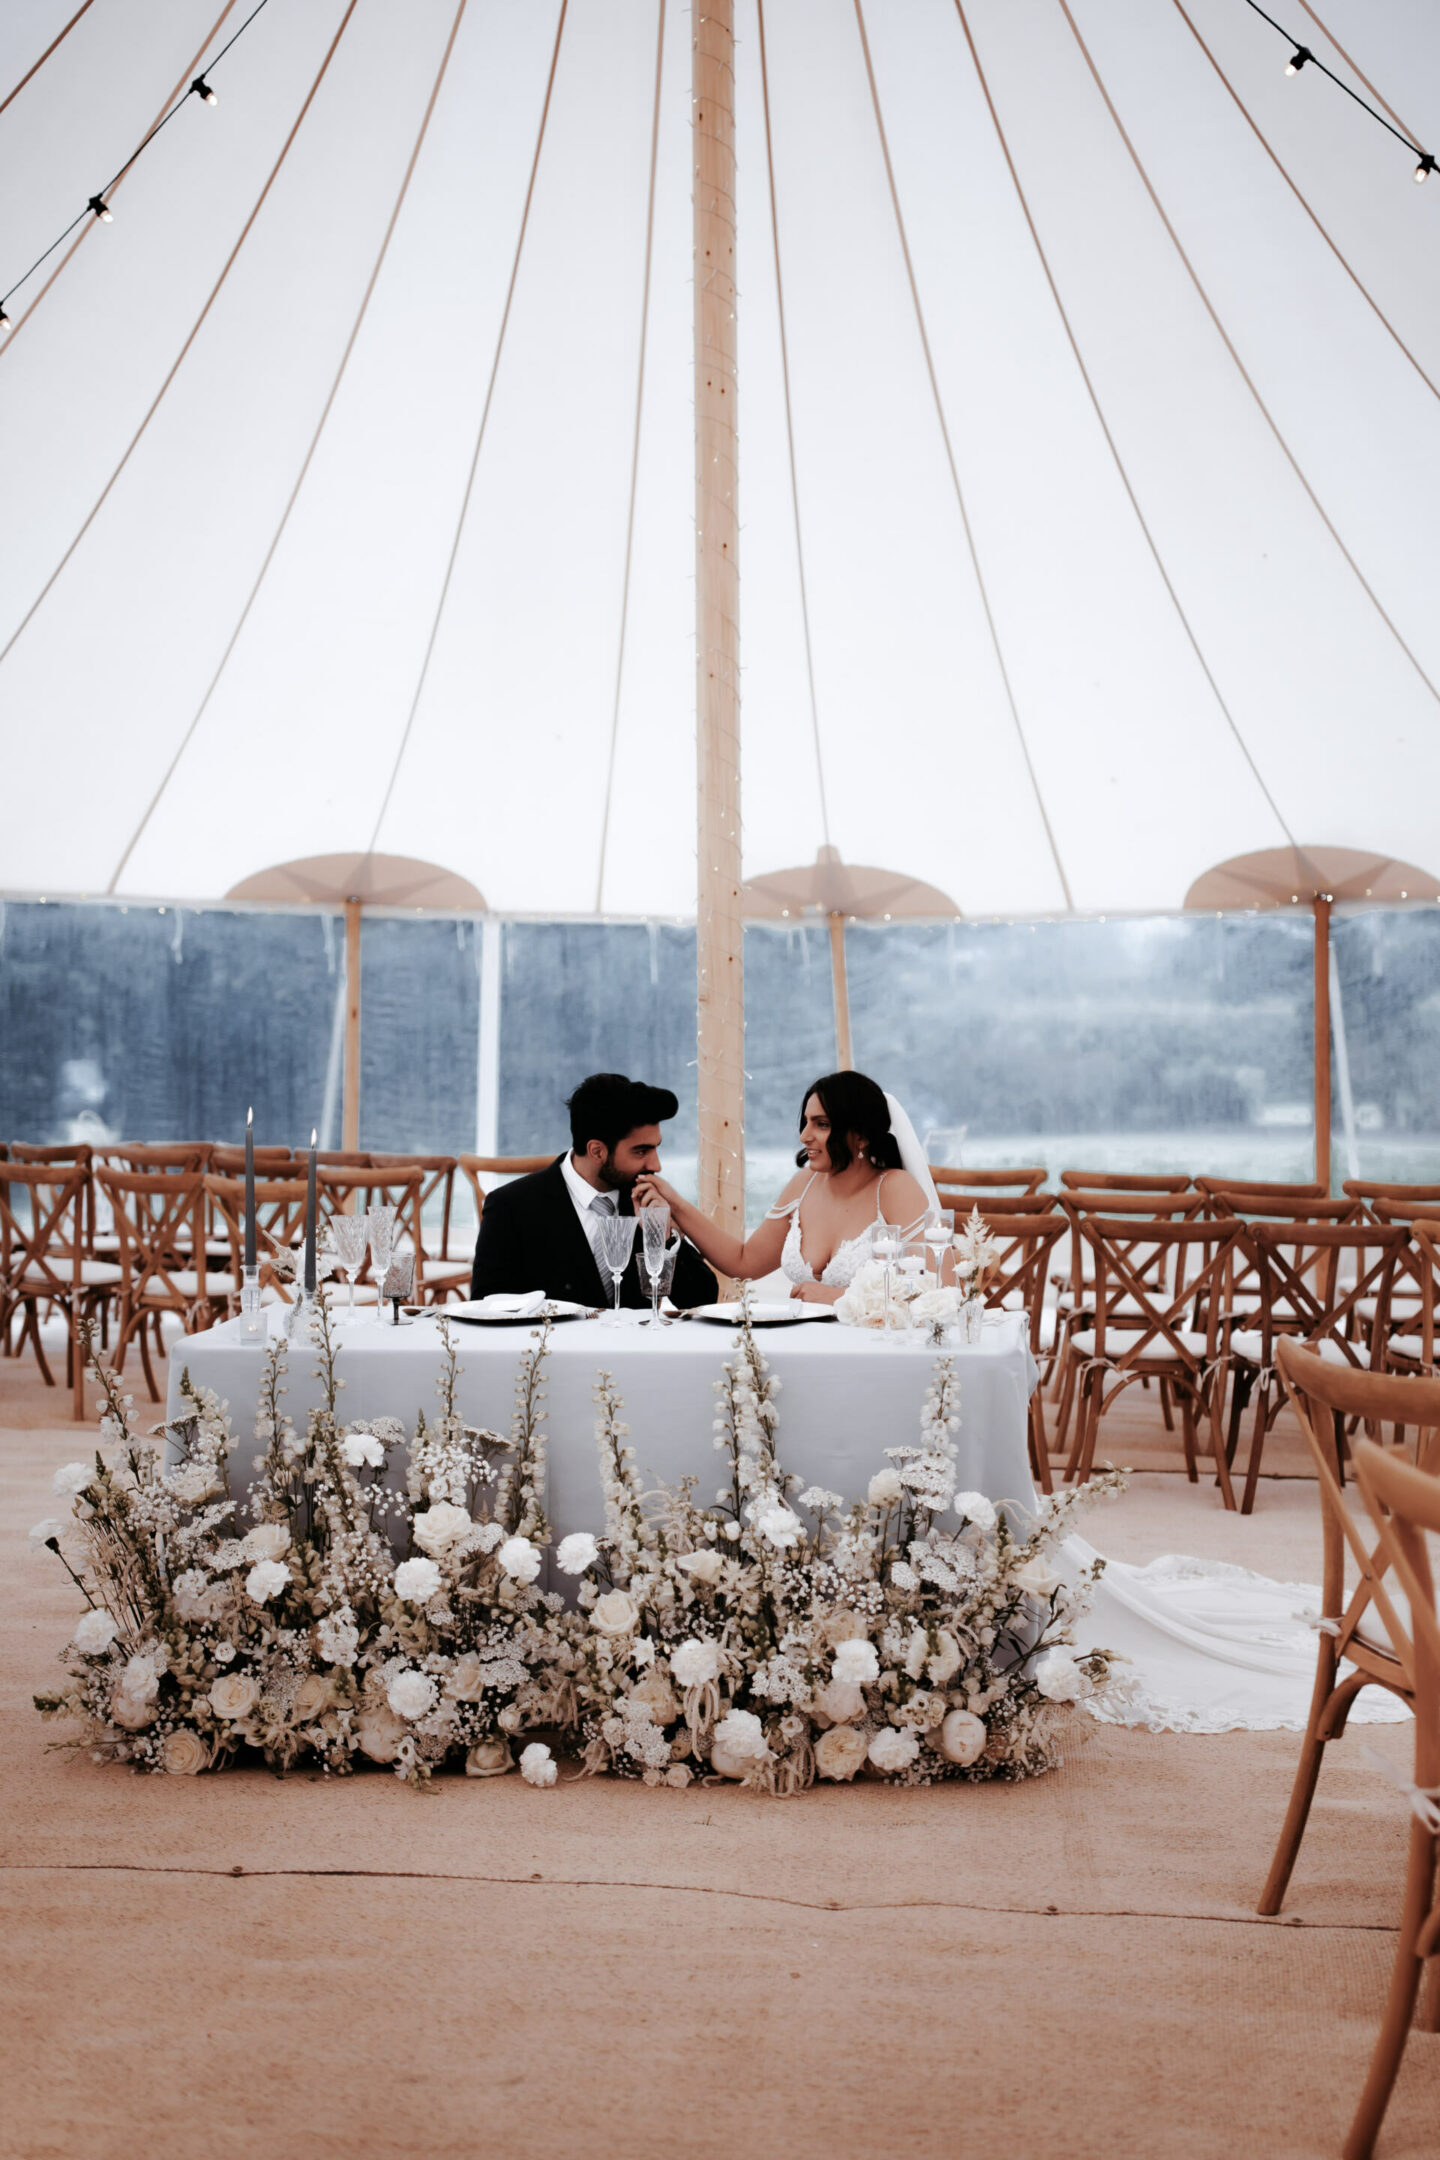 Sweetheart table in the marquee